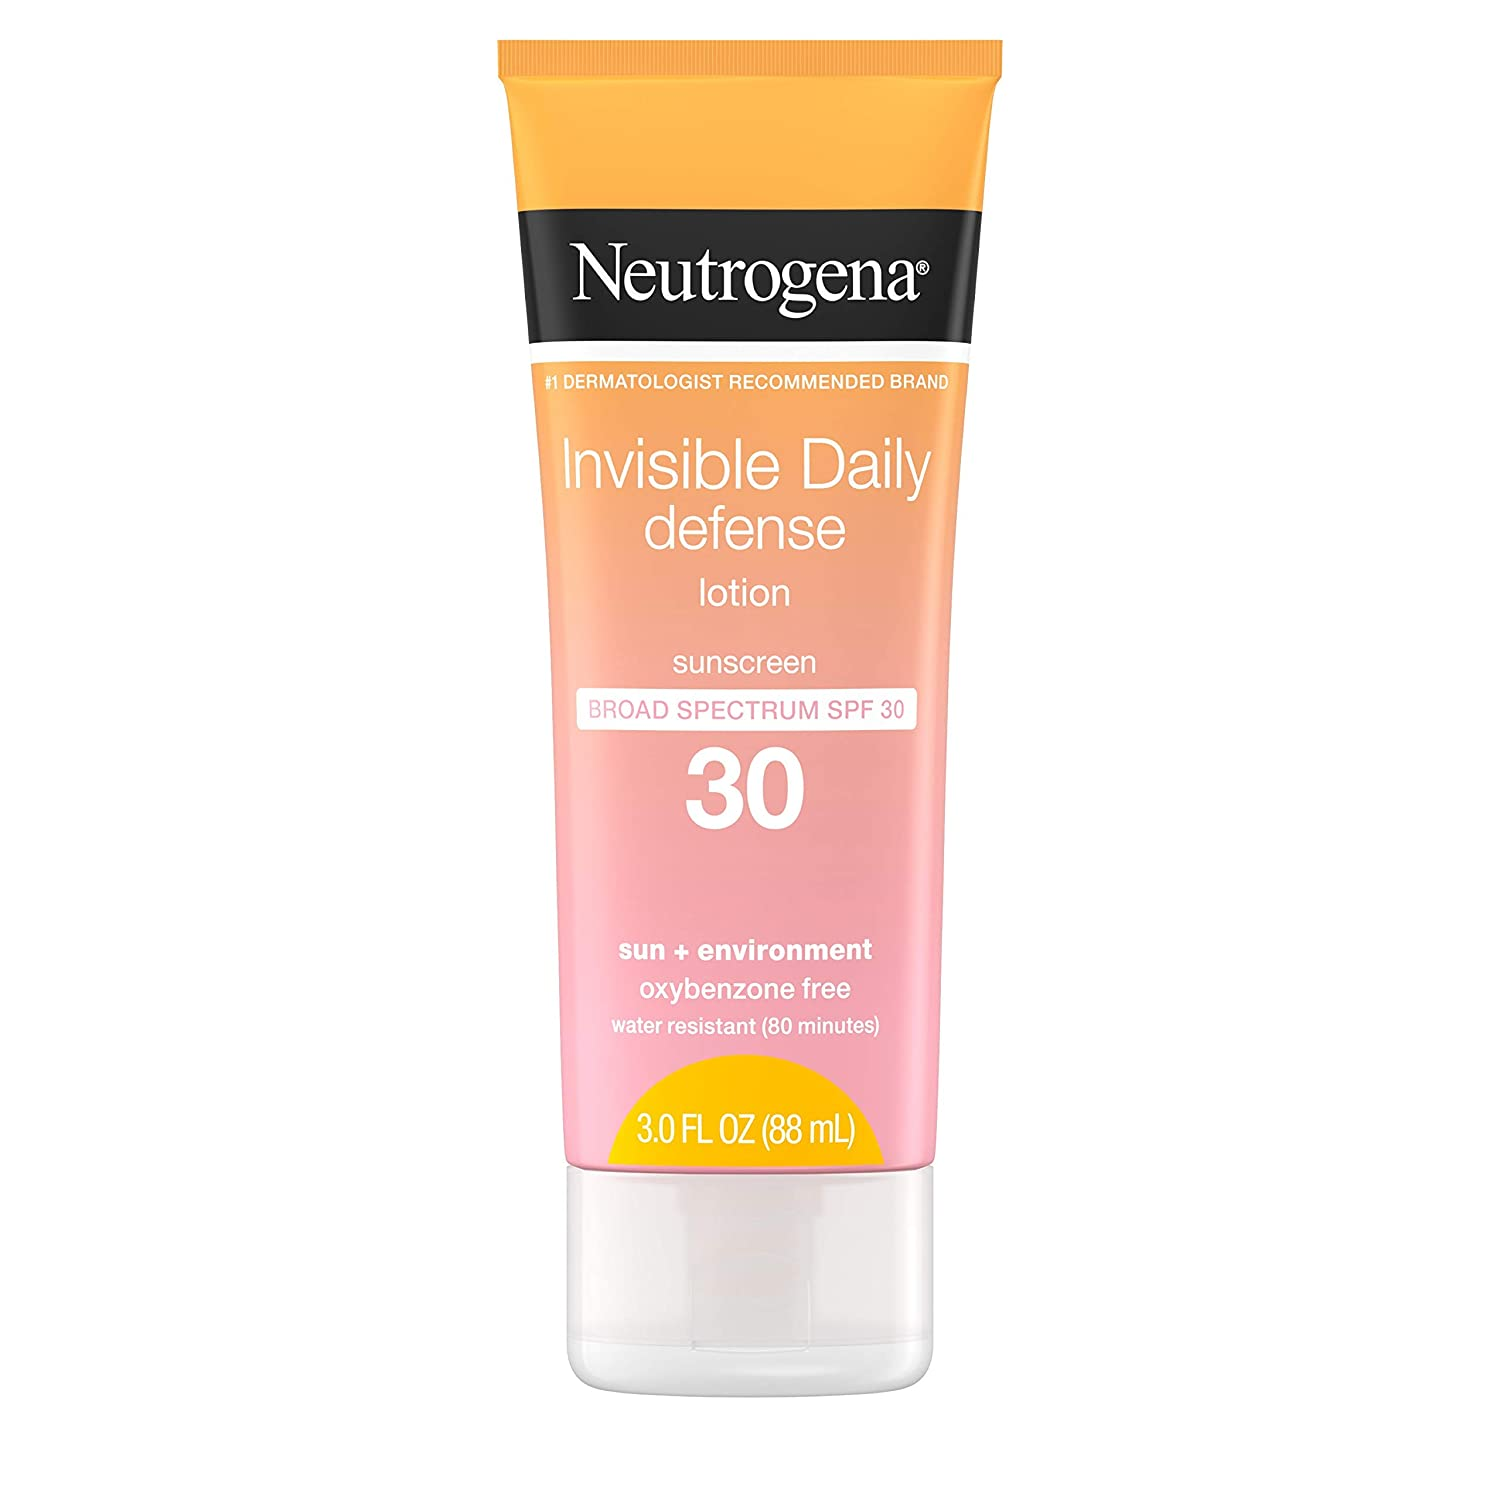 Neutrogena Invisible Daily Defense Sunscreen Lotion, Broad Spectrum SPF 30, Oxybenzone-Free & Water-Resistant, Sun & Environmental Aggressor Protection, Antioxidant Complex, 3.0 fl. oz